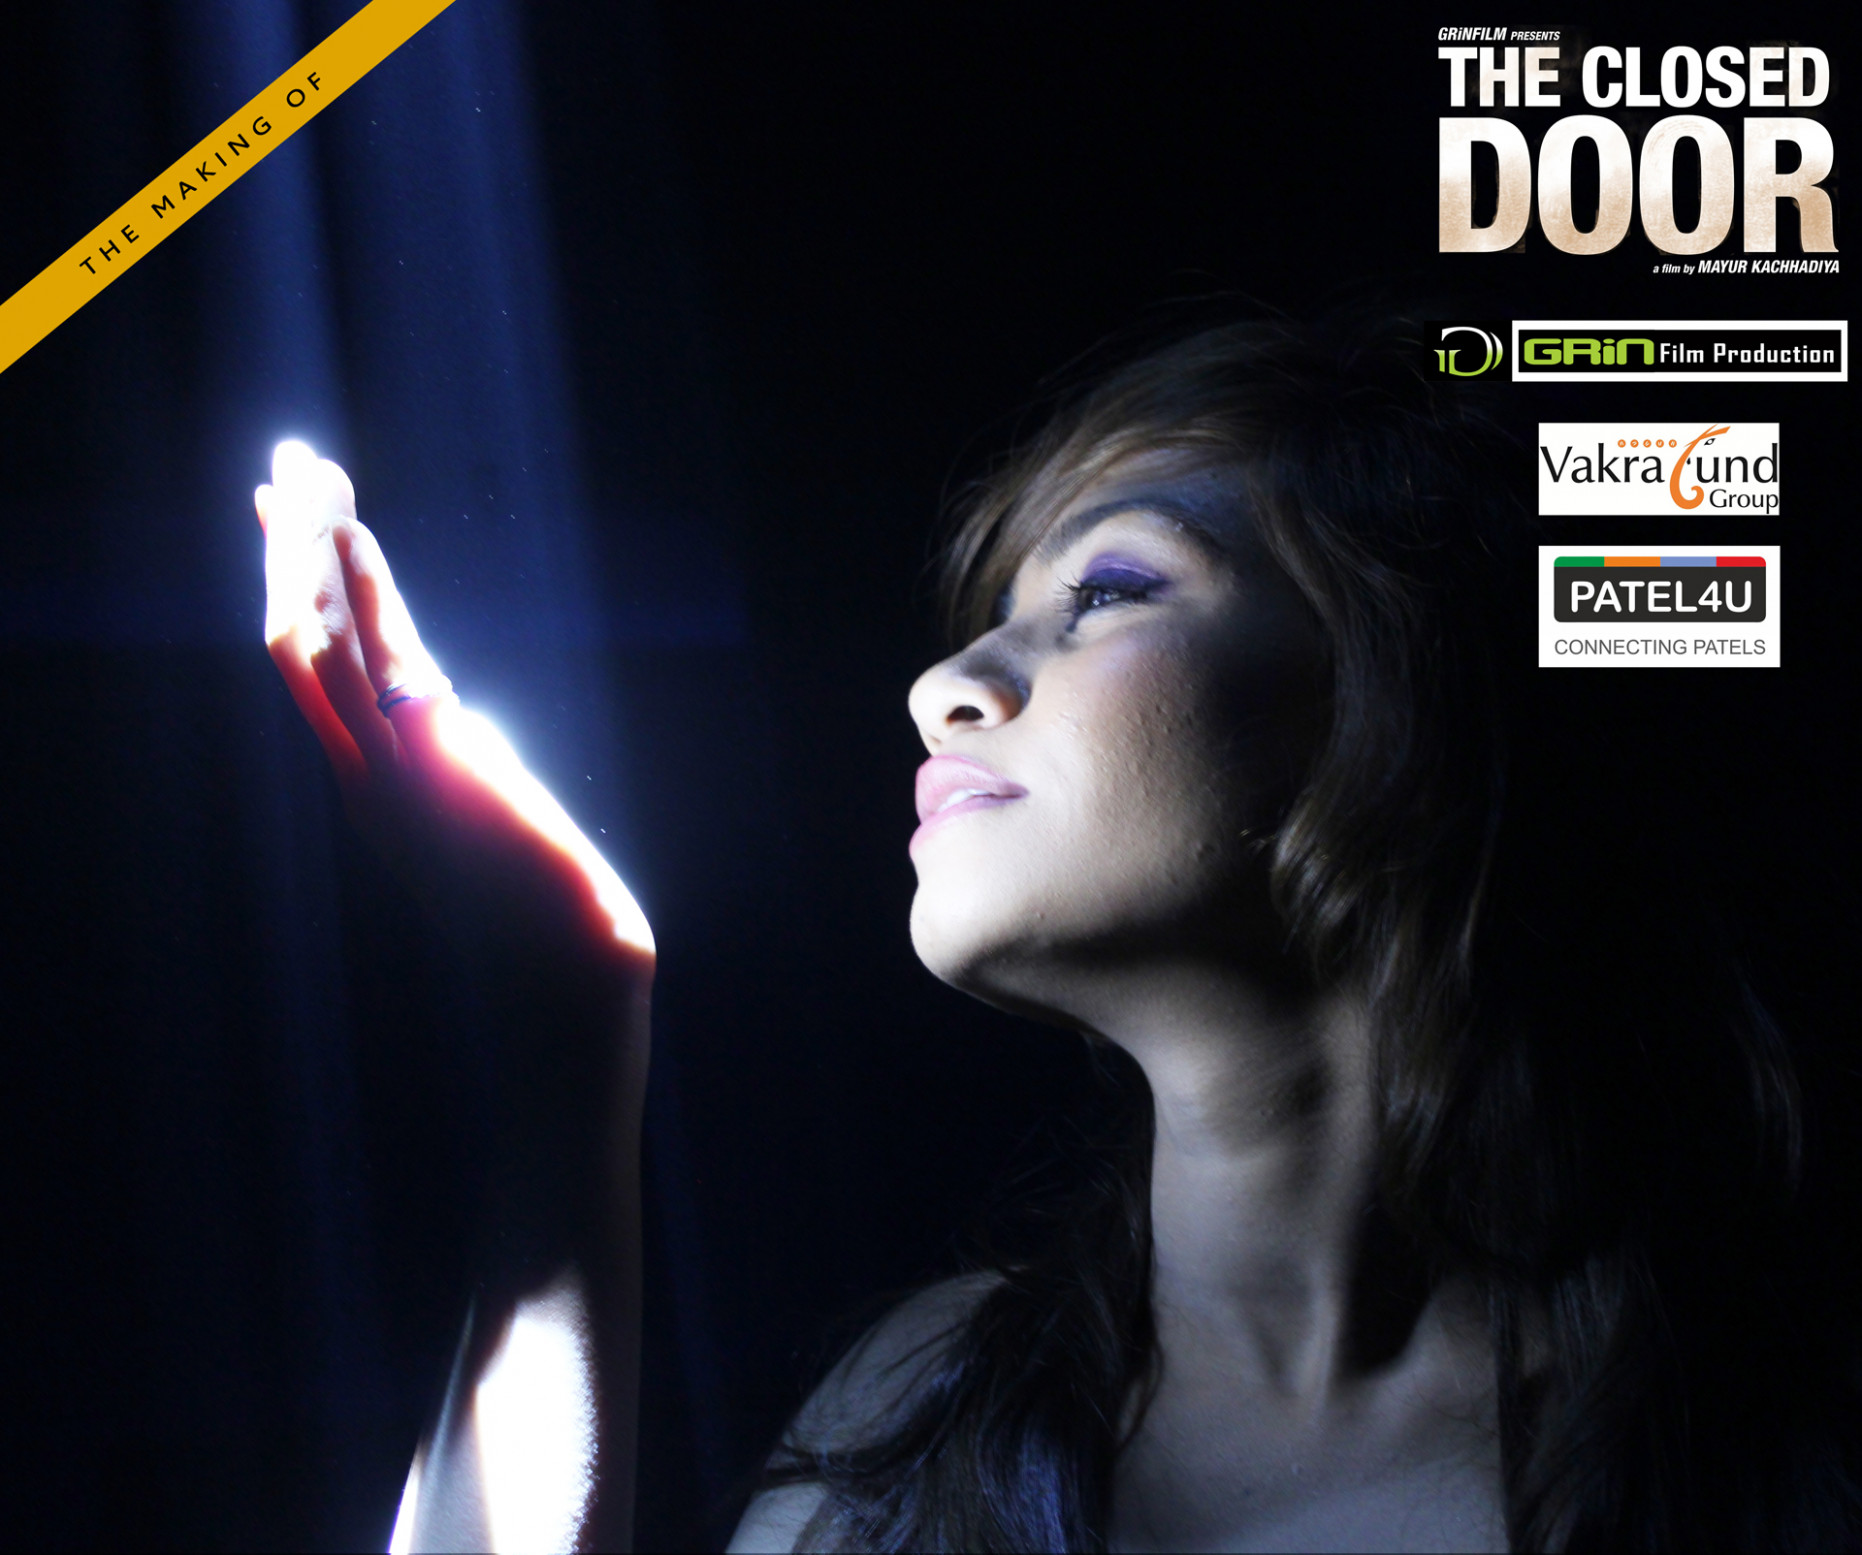 """The Closed Door"" Coming Soon – GRiNFILM Production"